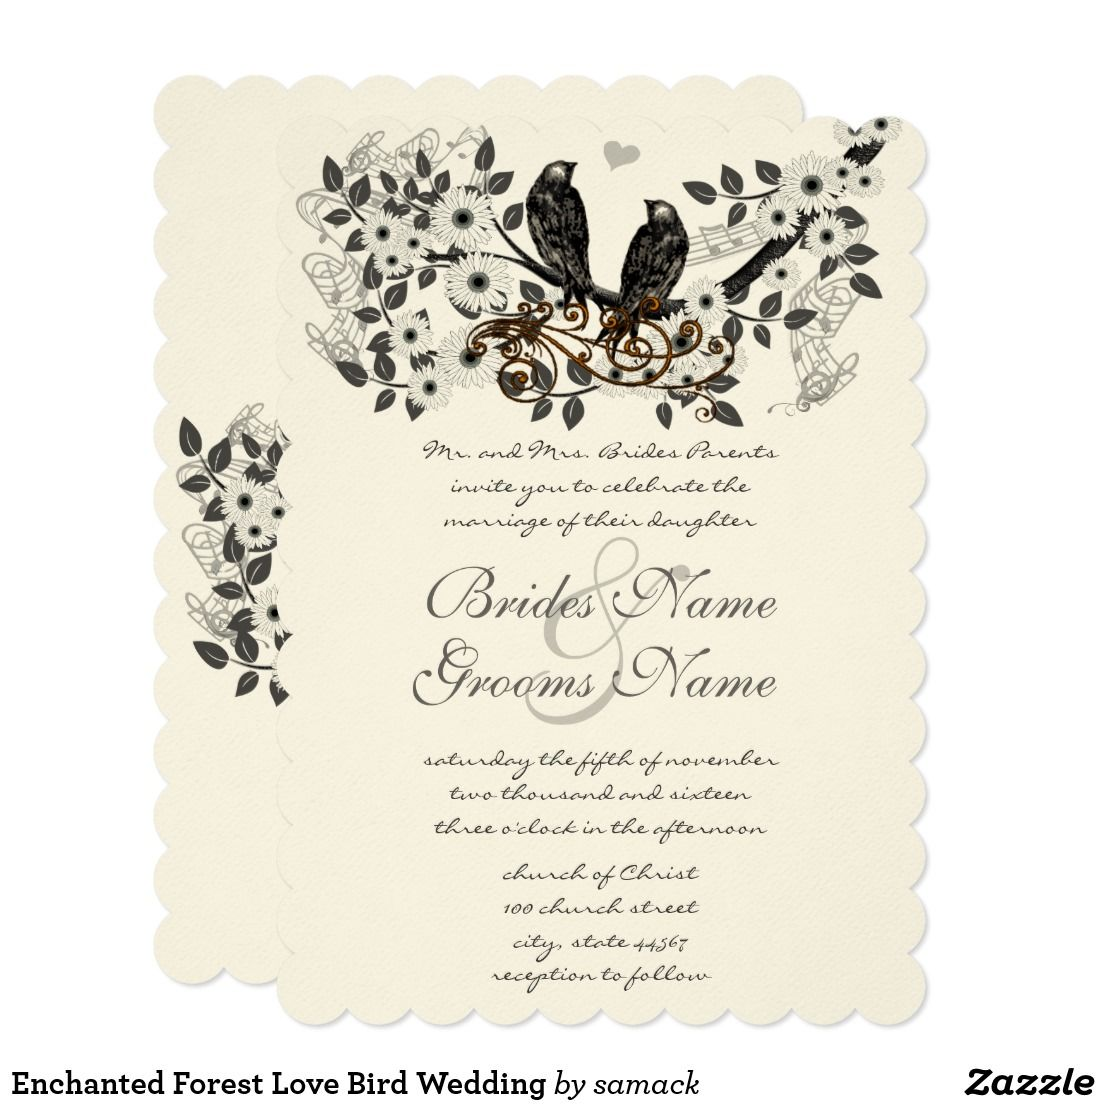 Enchanted Forest Love Bird Wedding Card Vintage Birds on Branch ...